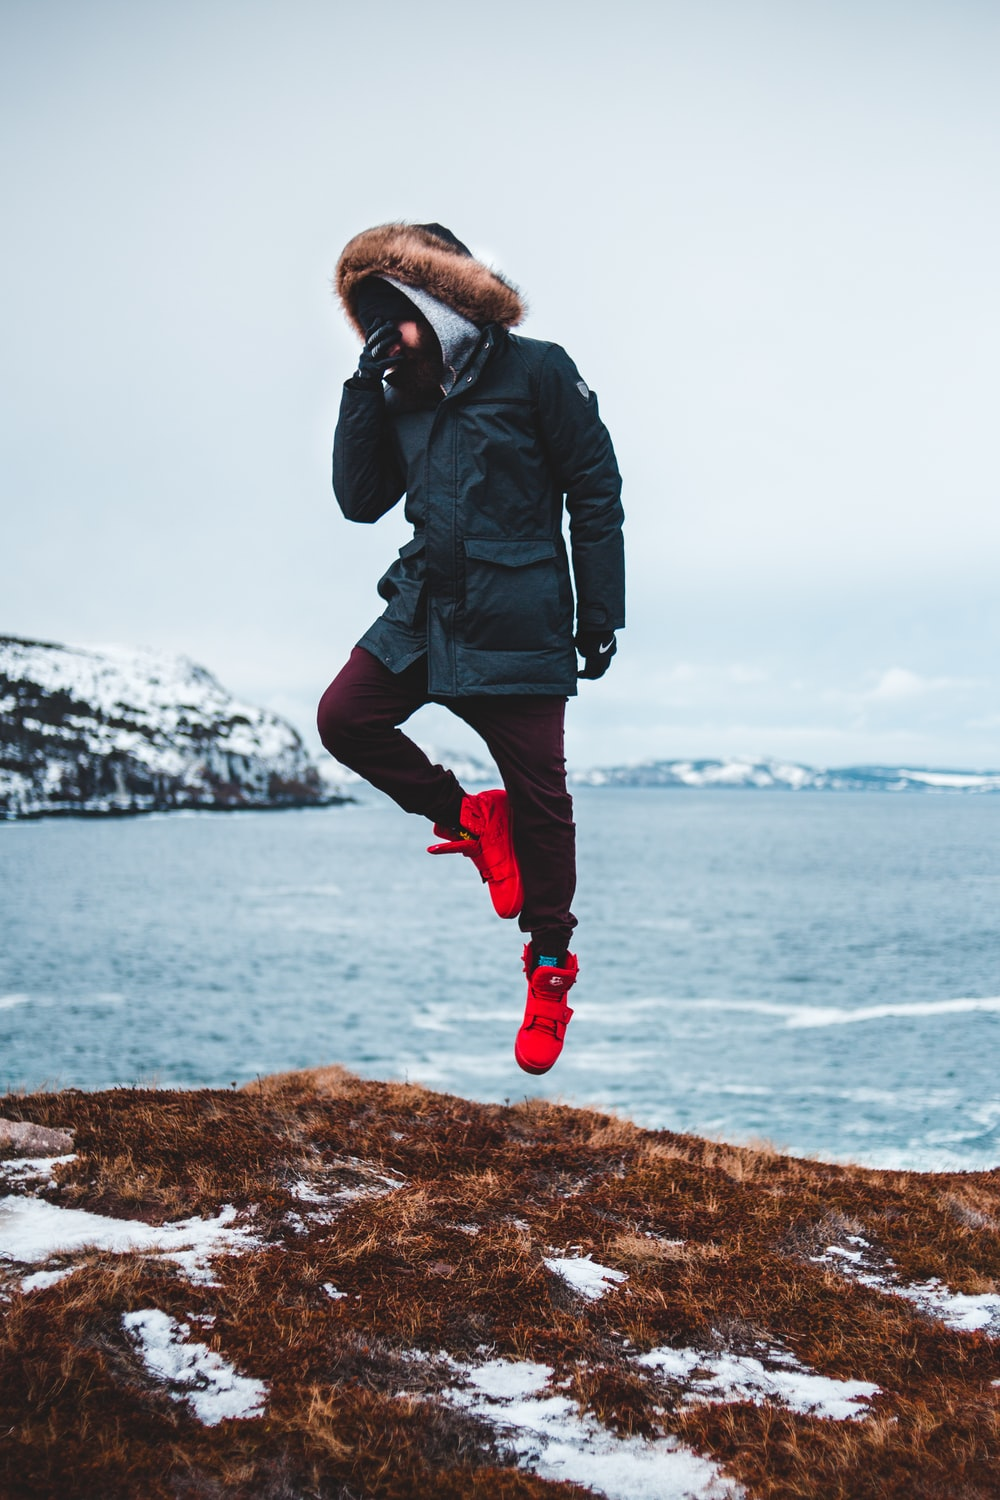 jumpshot photography of man in a mountain cliff